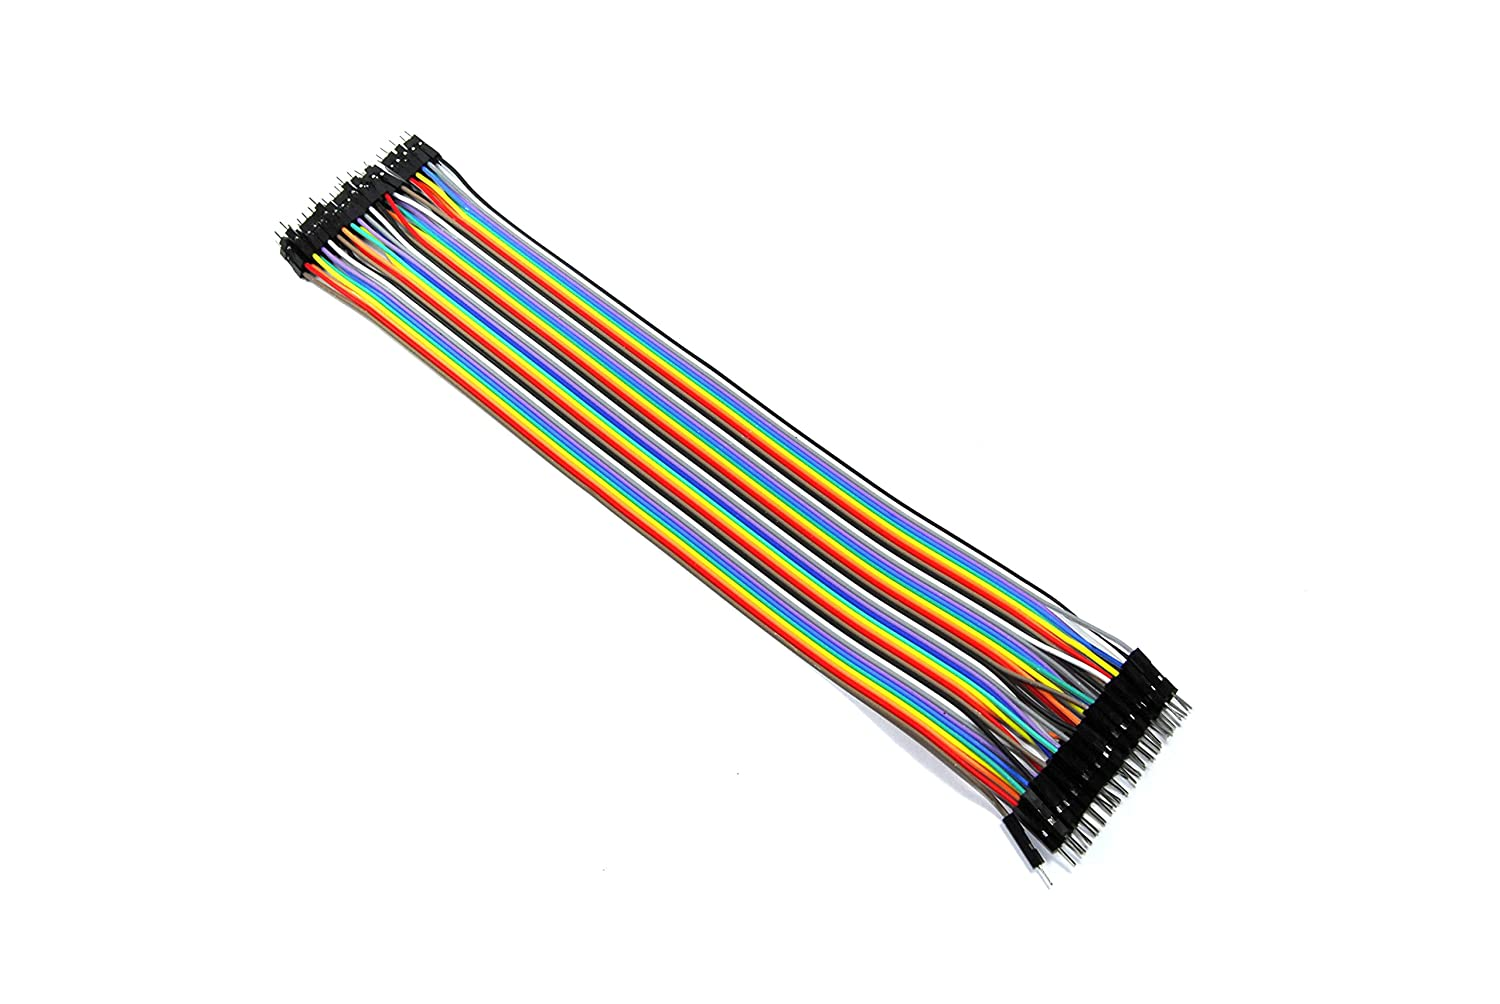 40 Male to Male Jumper Wires Solderless 30cm Ribbon Dupont Arduino